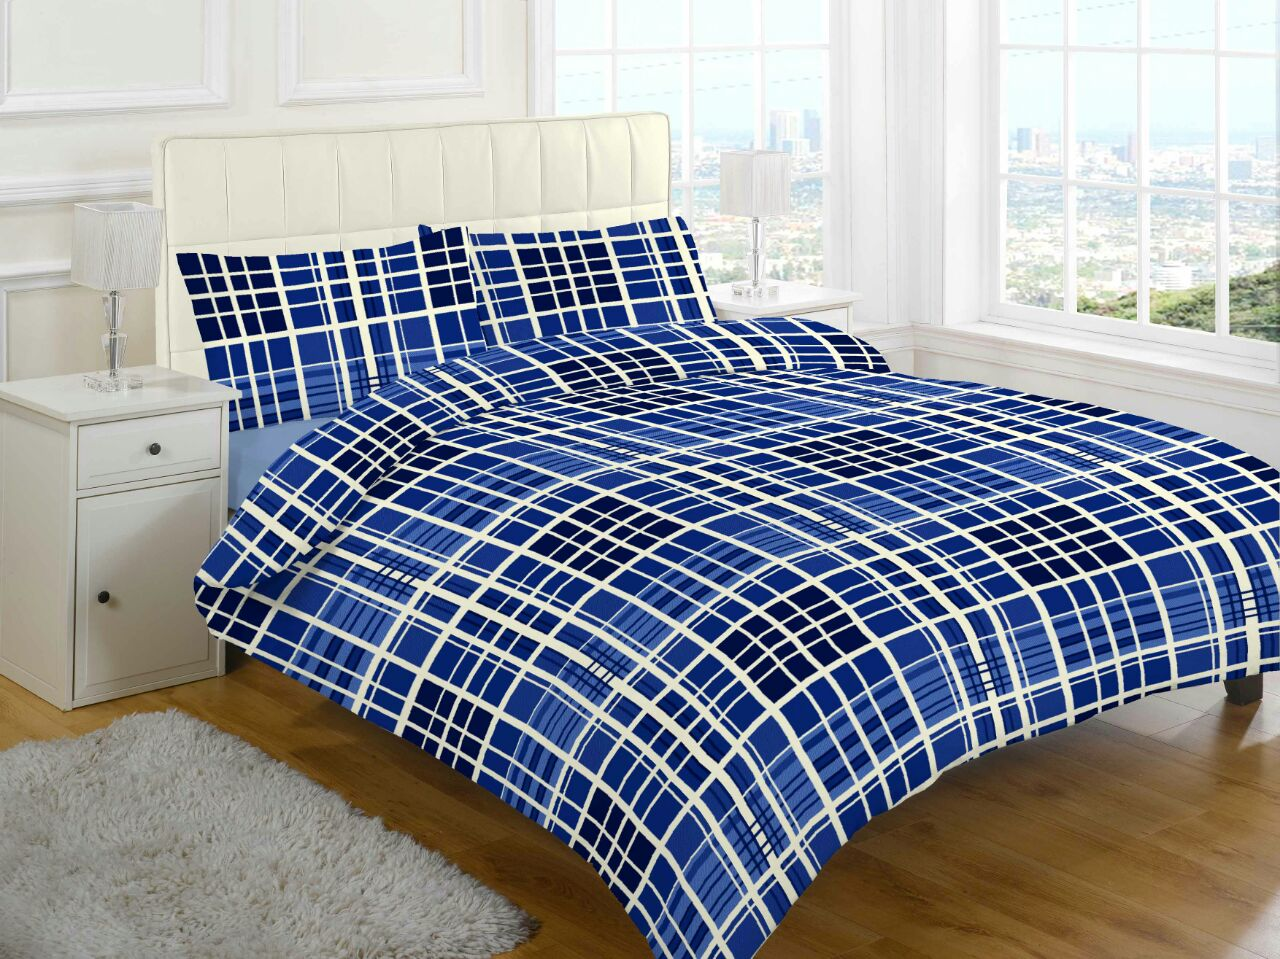 evan check brushed cotton flannelette thermal duvet cover. Black Bedroom Furniture Sets. Home Design Ideas